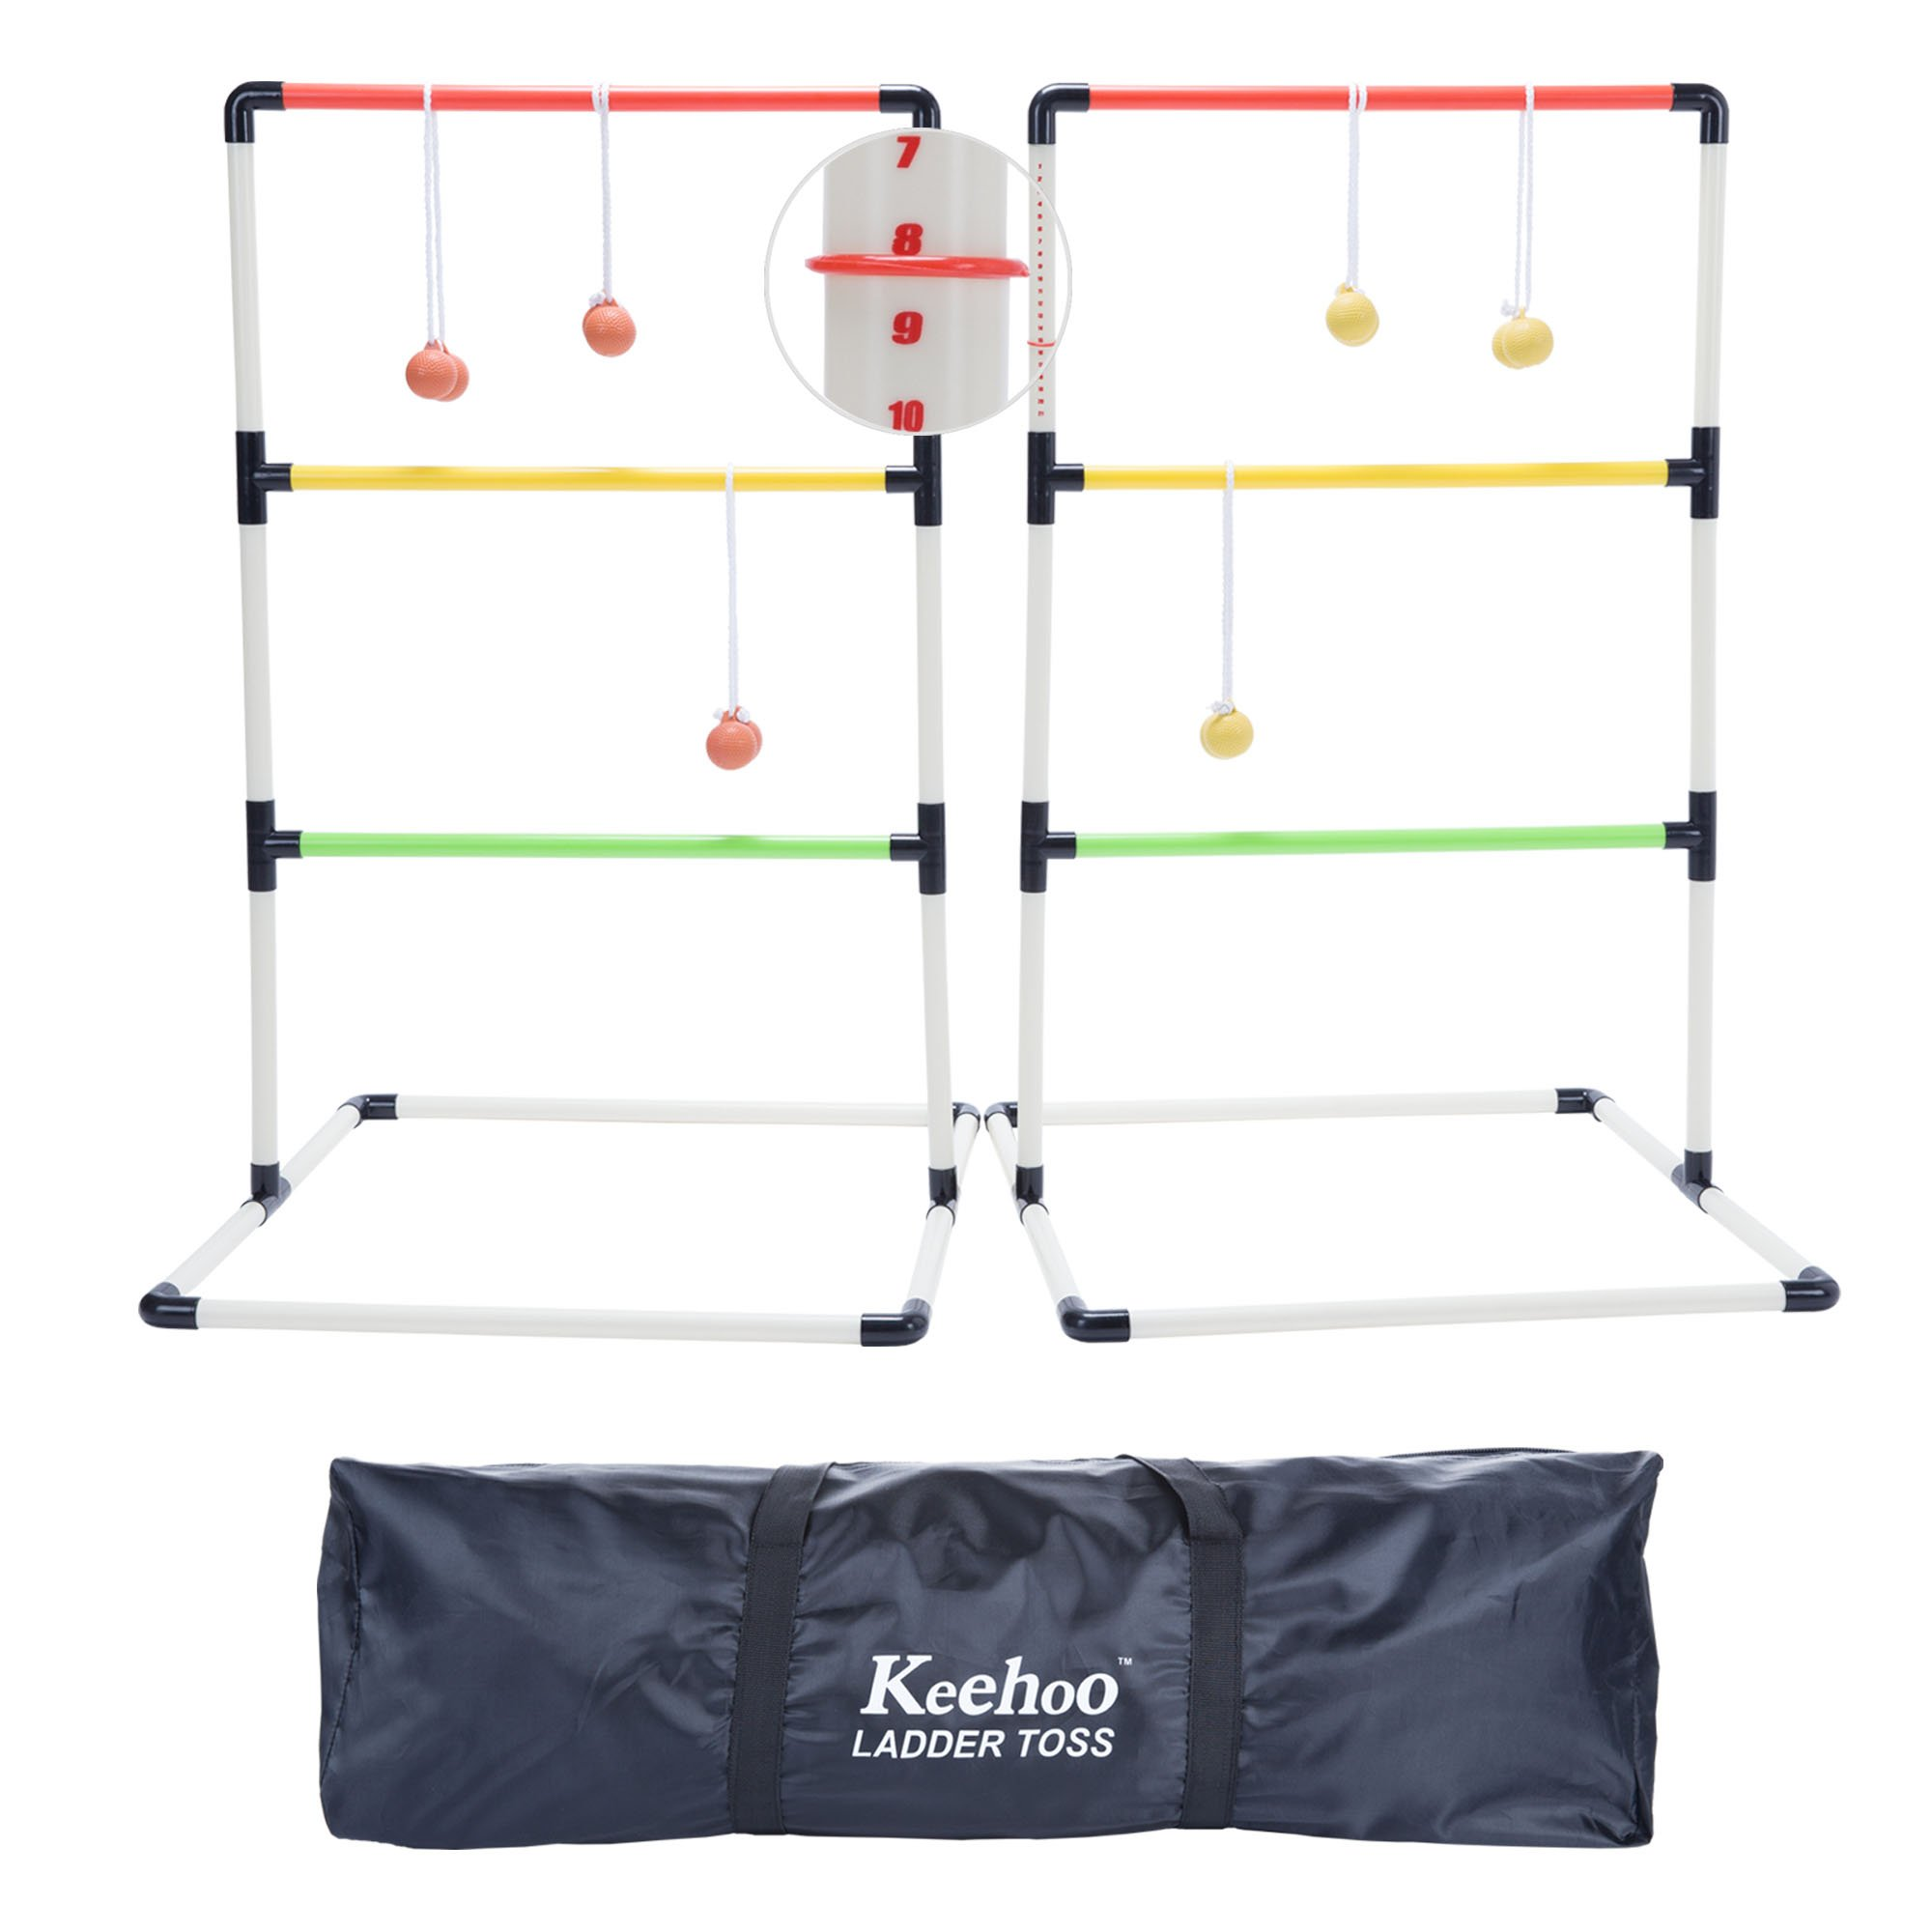 KH Yard/Lawn/Beach Ladder Ball Toss Game for Family with 6 Bolos and Waterproof Carry Bag by Keehoo